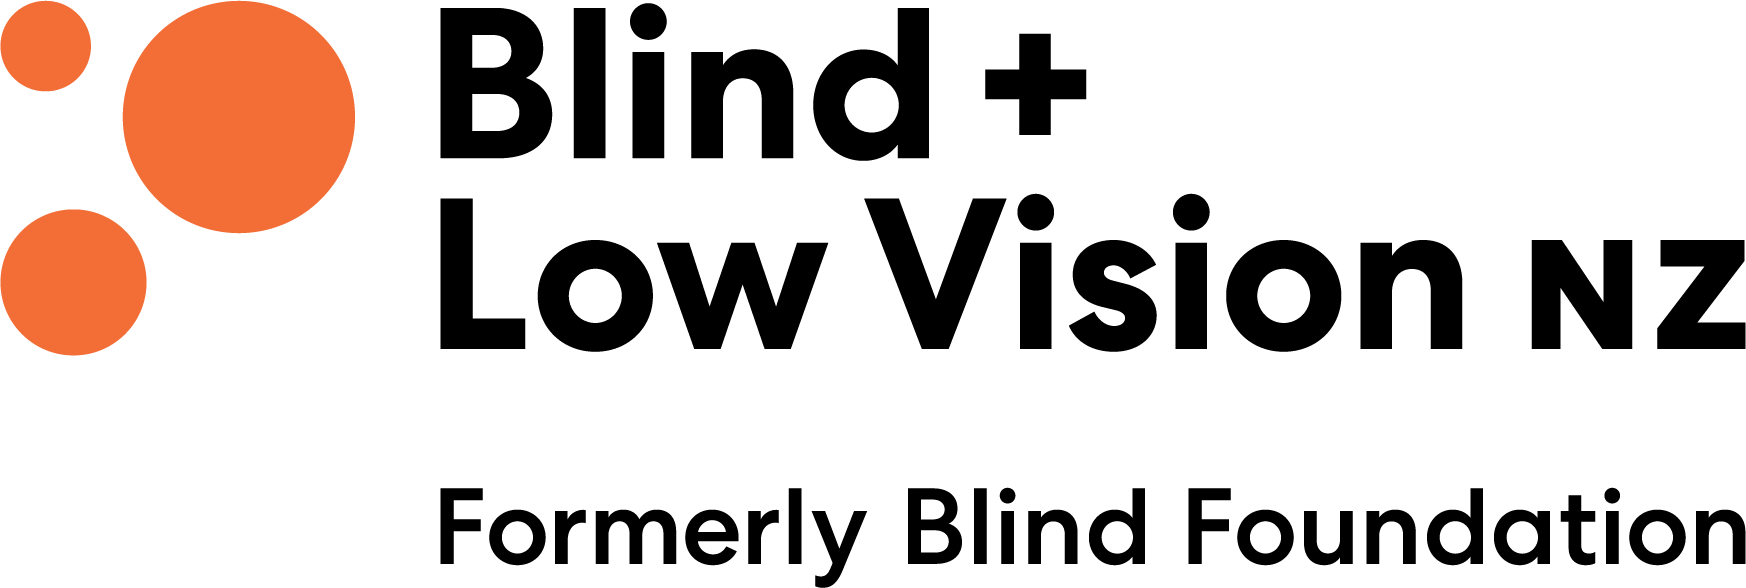 Blind & Low Vision NZ - Formerly Blind Foundation